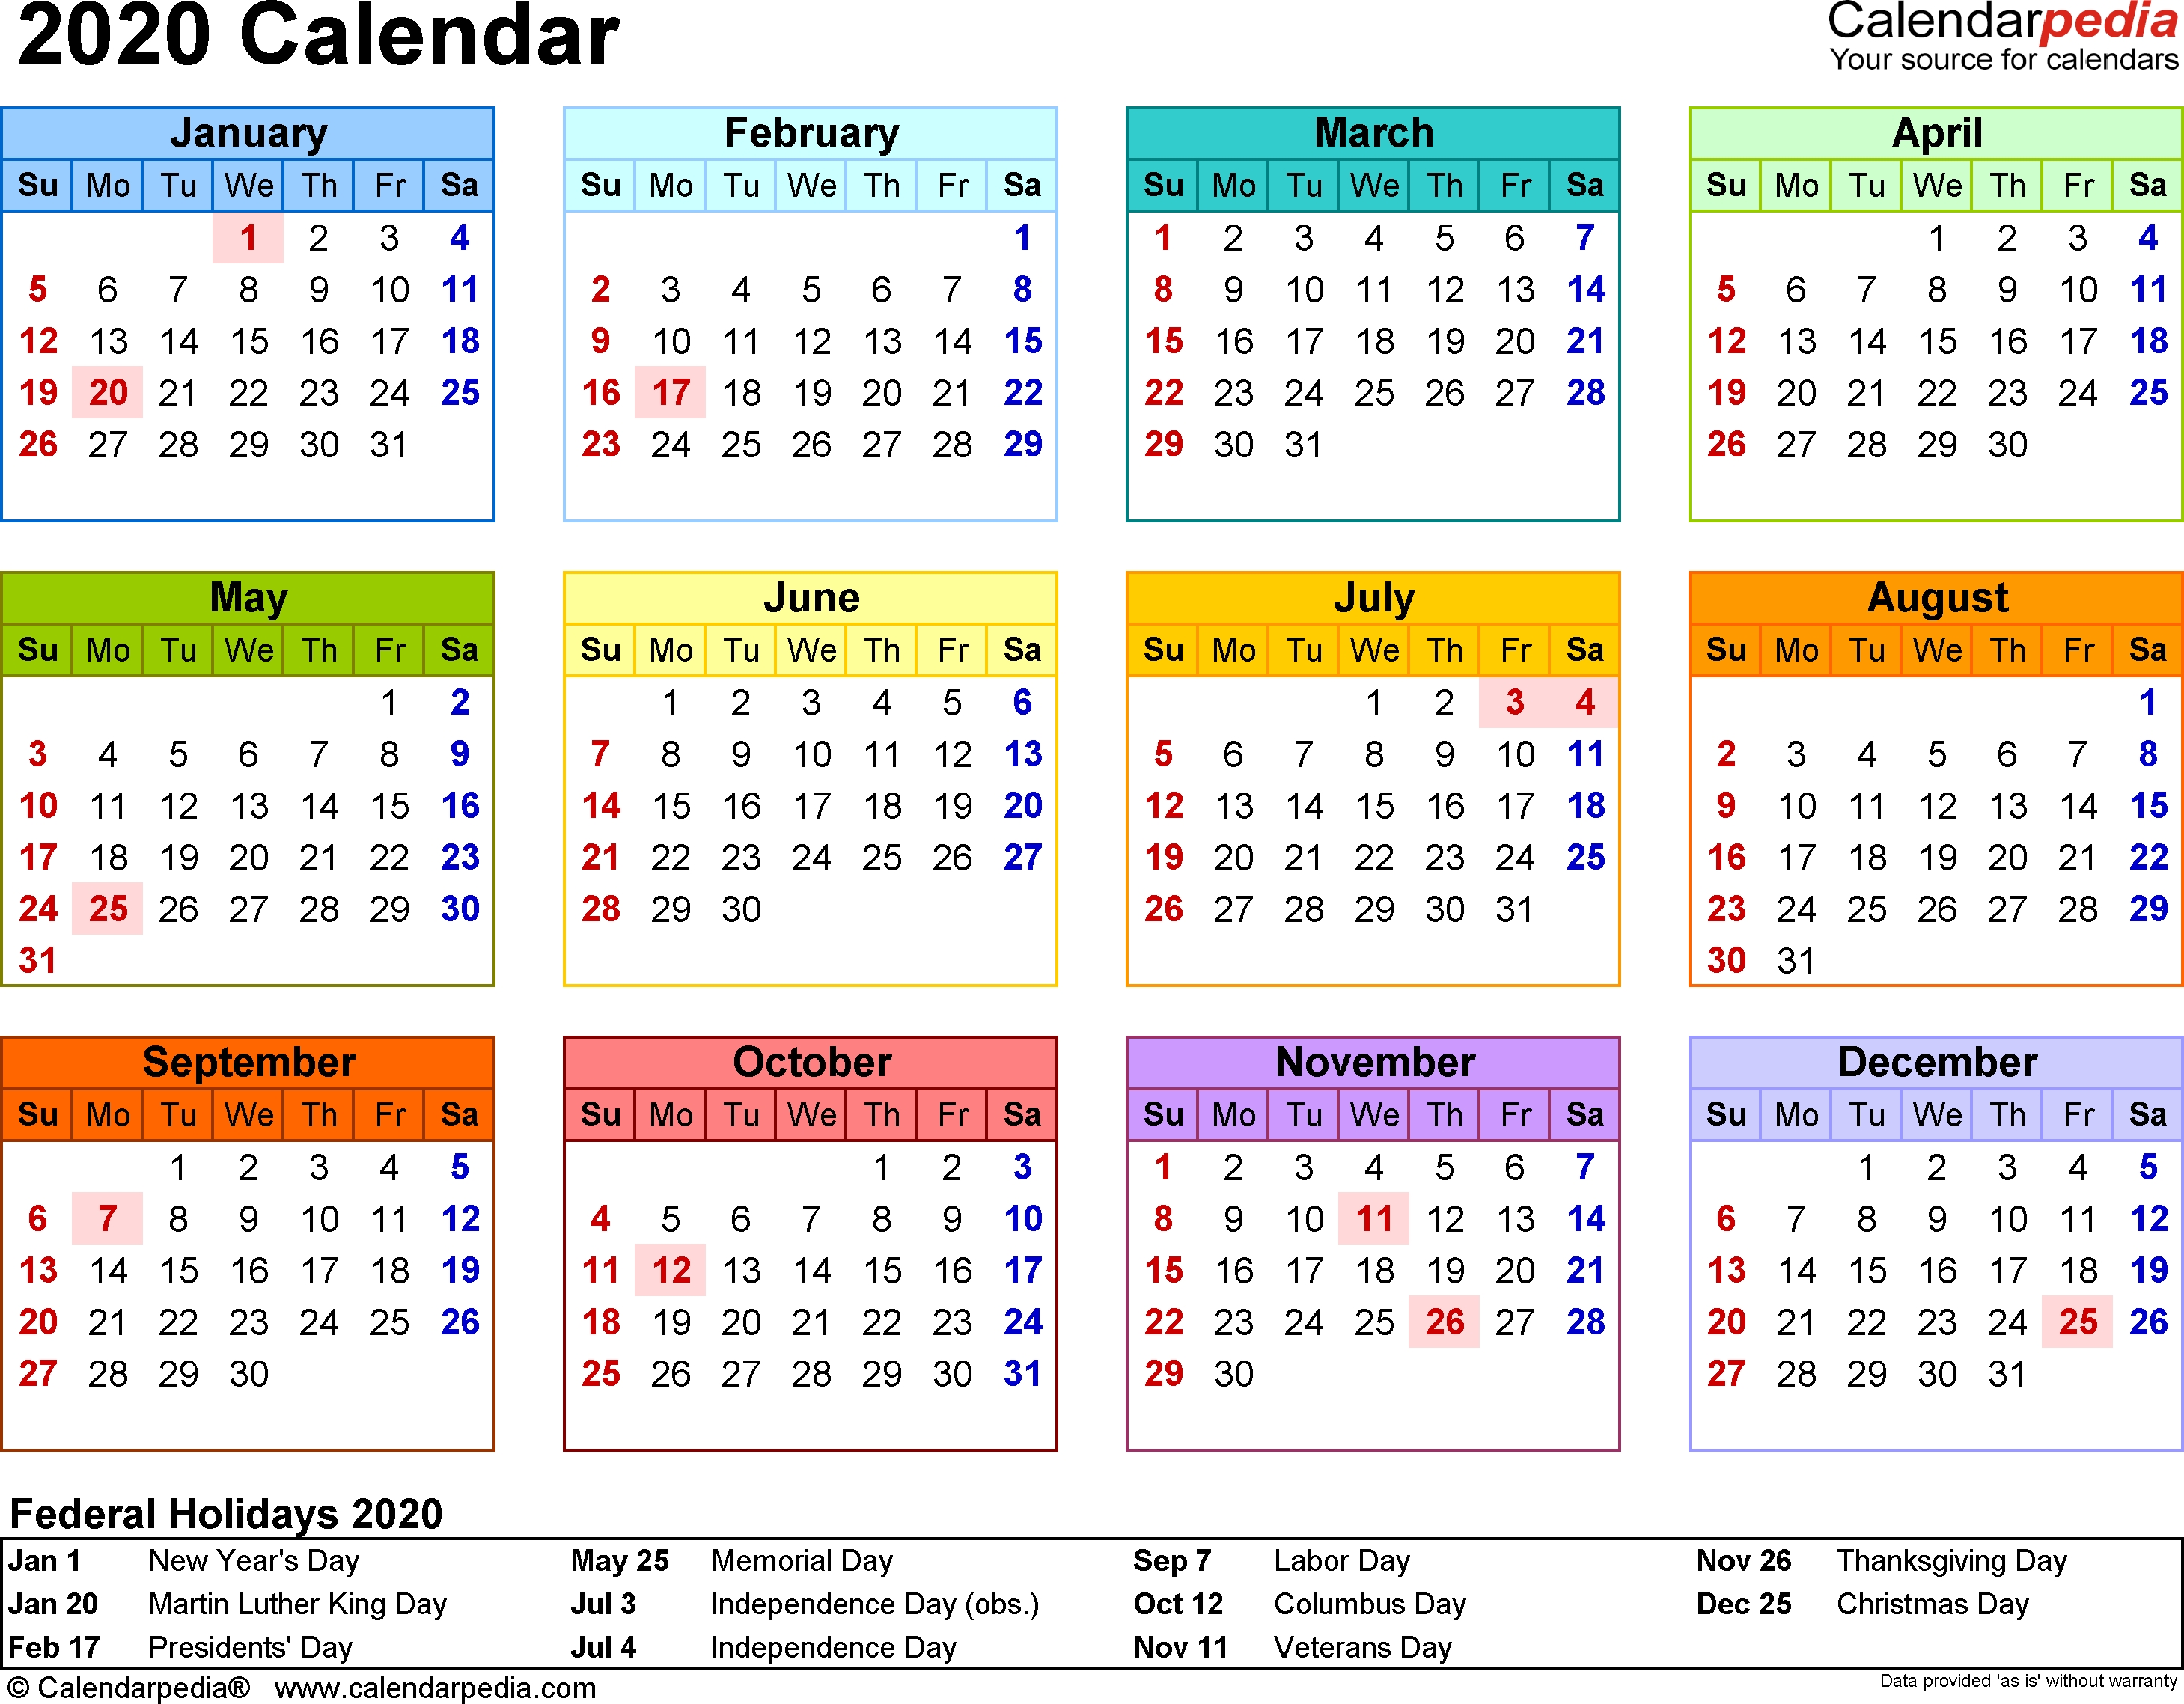 2020 Calendar - Download 18 Free Printable Excel Templates-2020 South Africa Calendar And Holidays